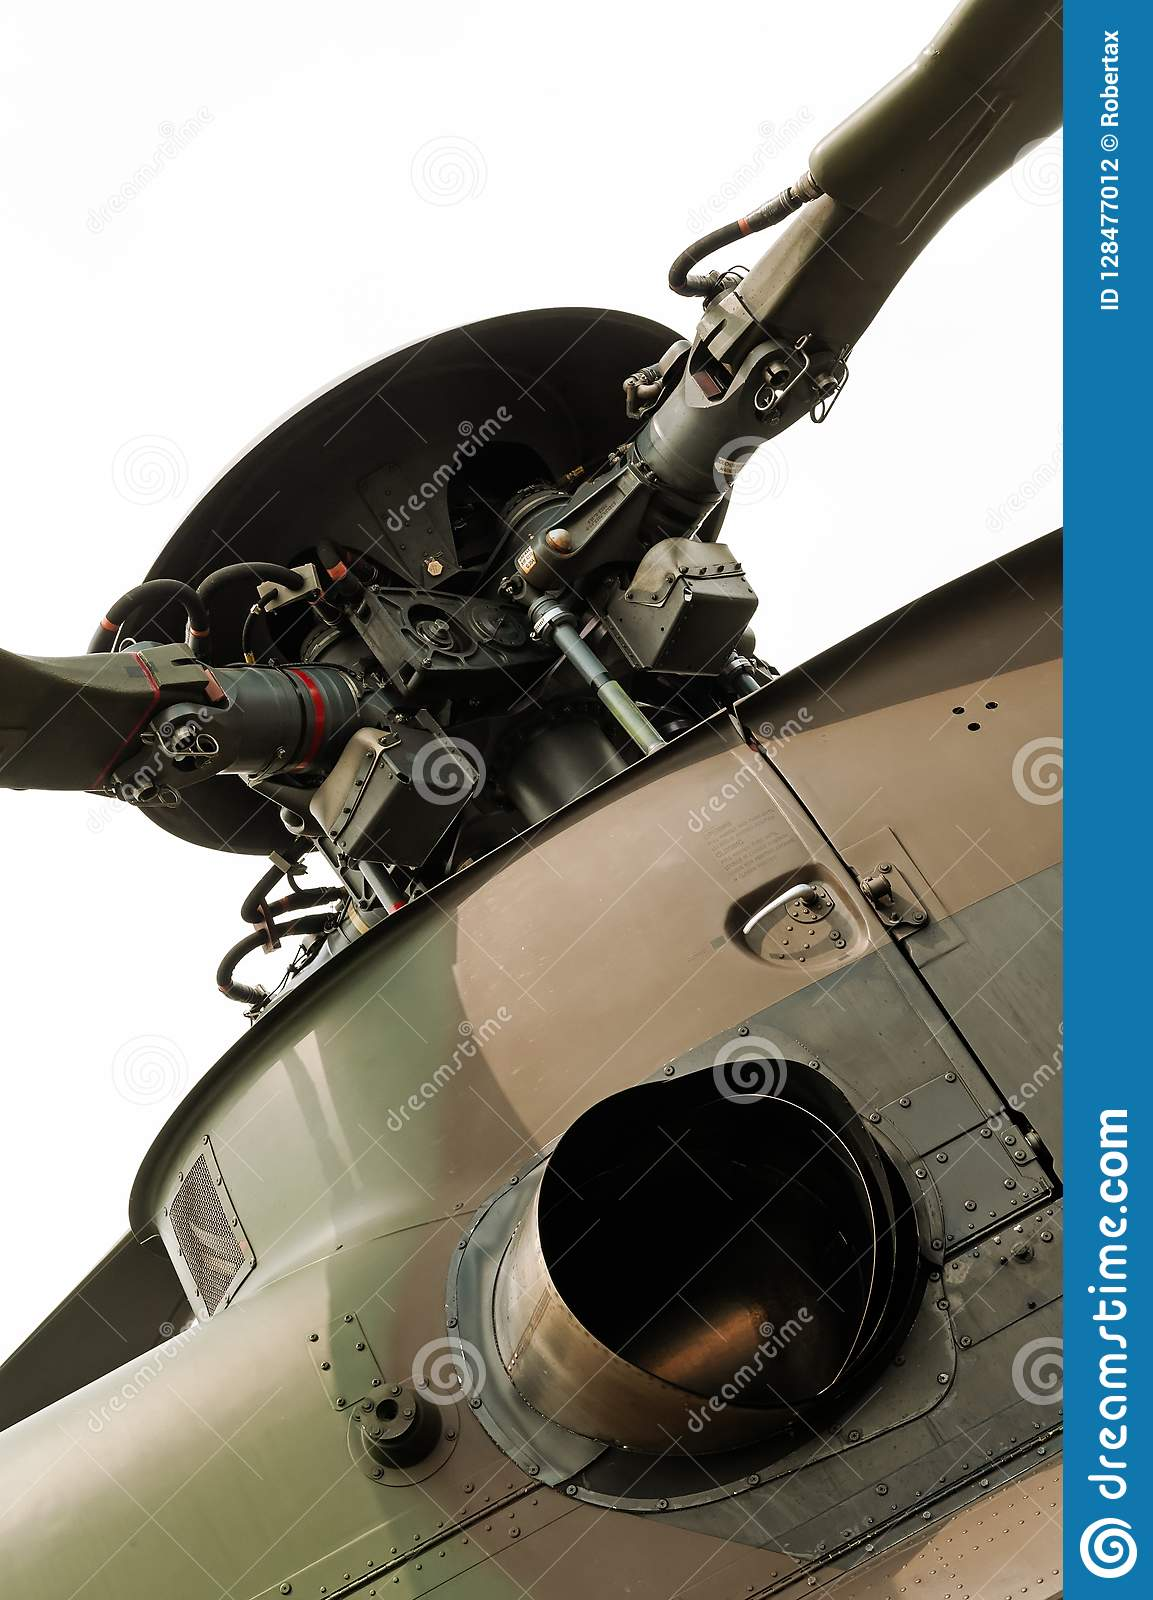 Swashplate Of Helicopter Main Rotor And Exhaust Pipe Engine